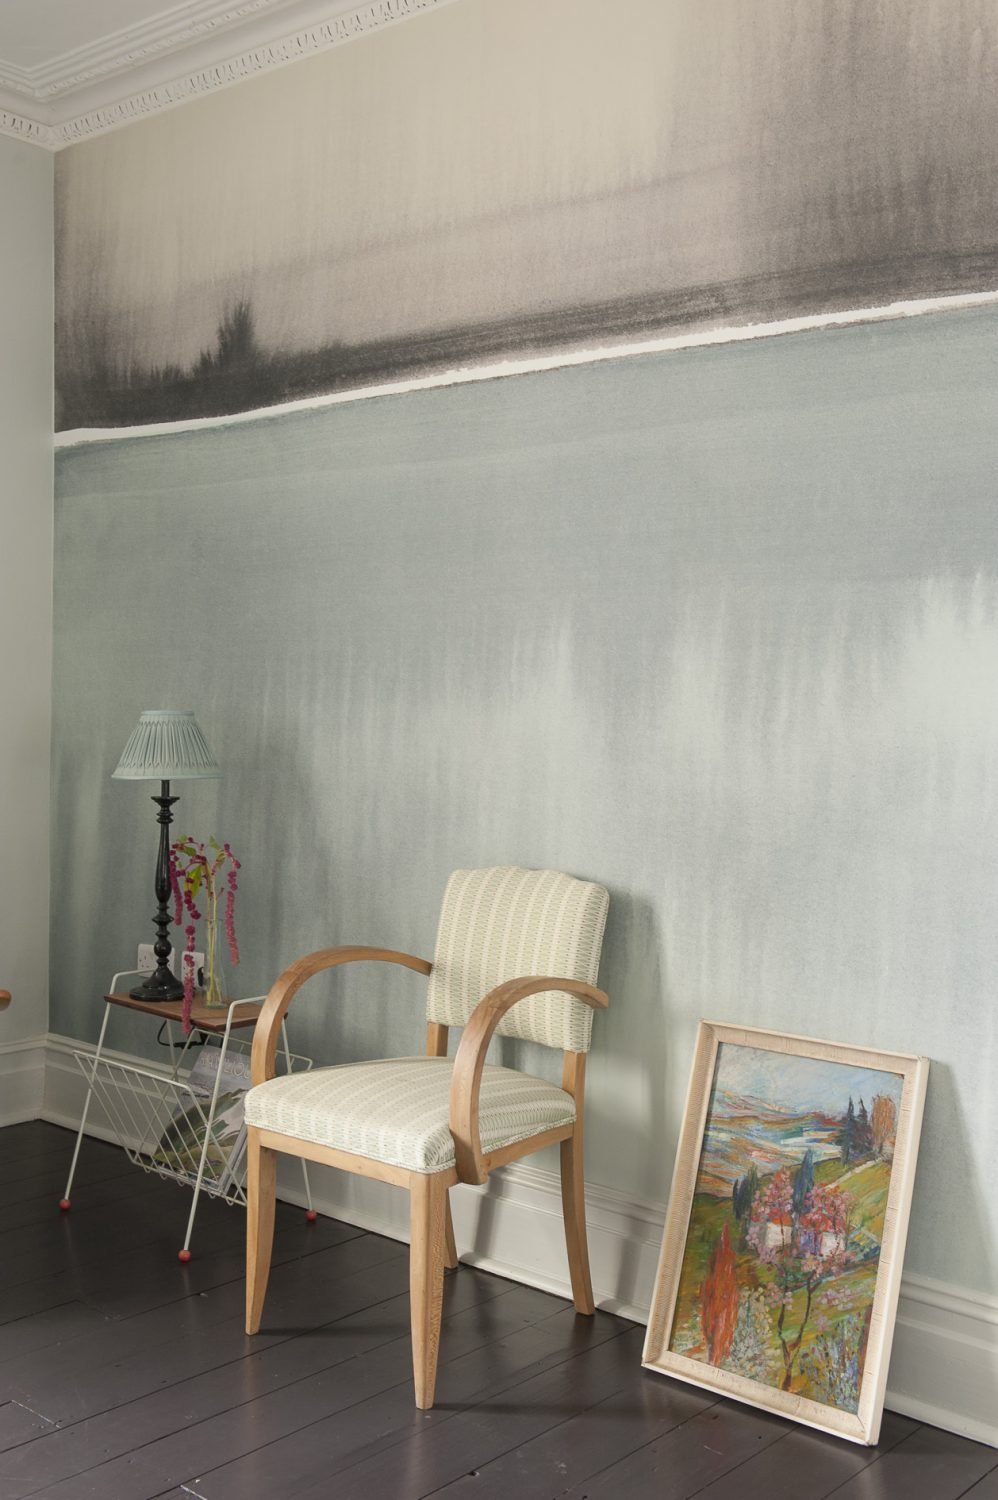 The wallpaper is from Louise's Murals collection, this one is called Still Lake. The painting propped against the wall is by Oskar Barblain